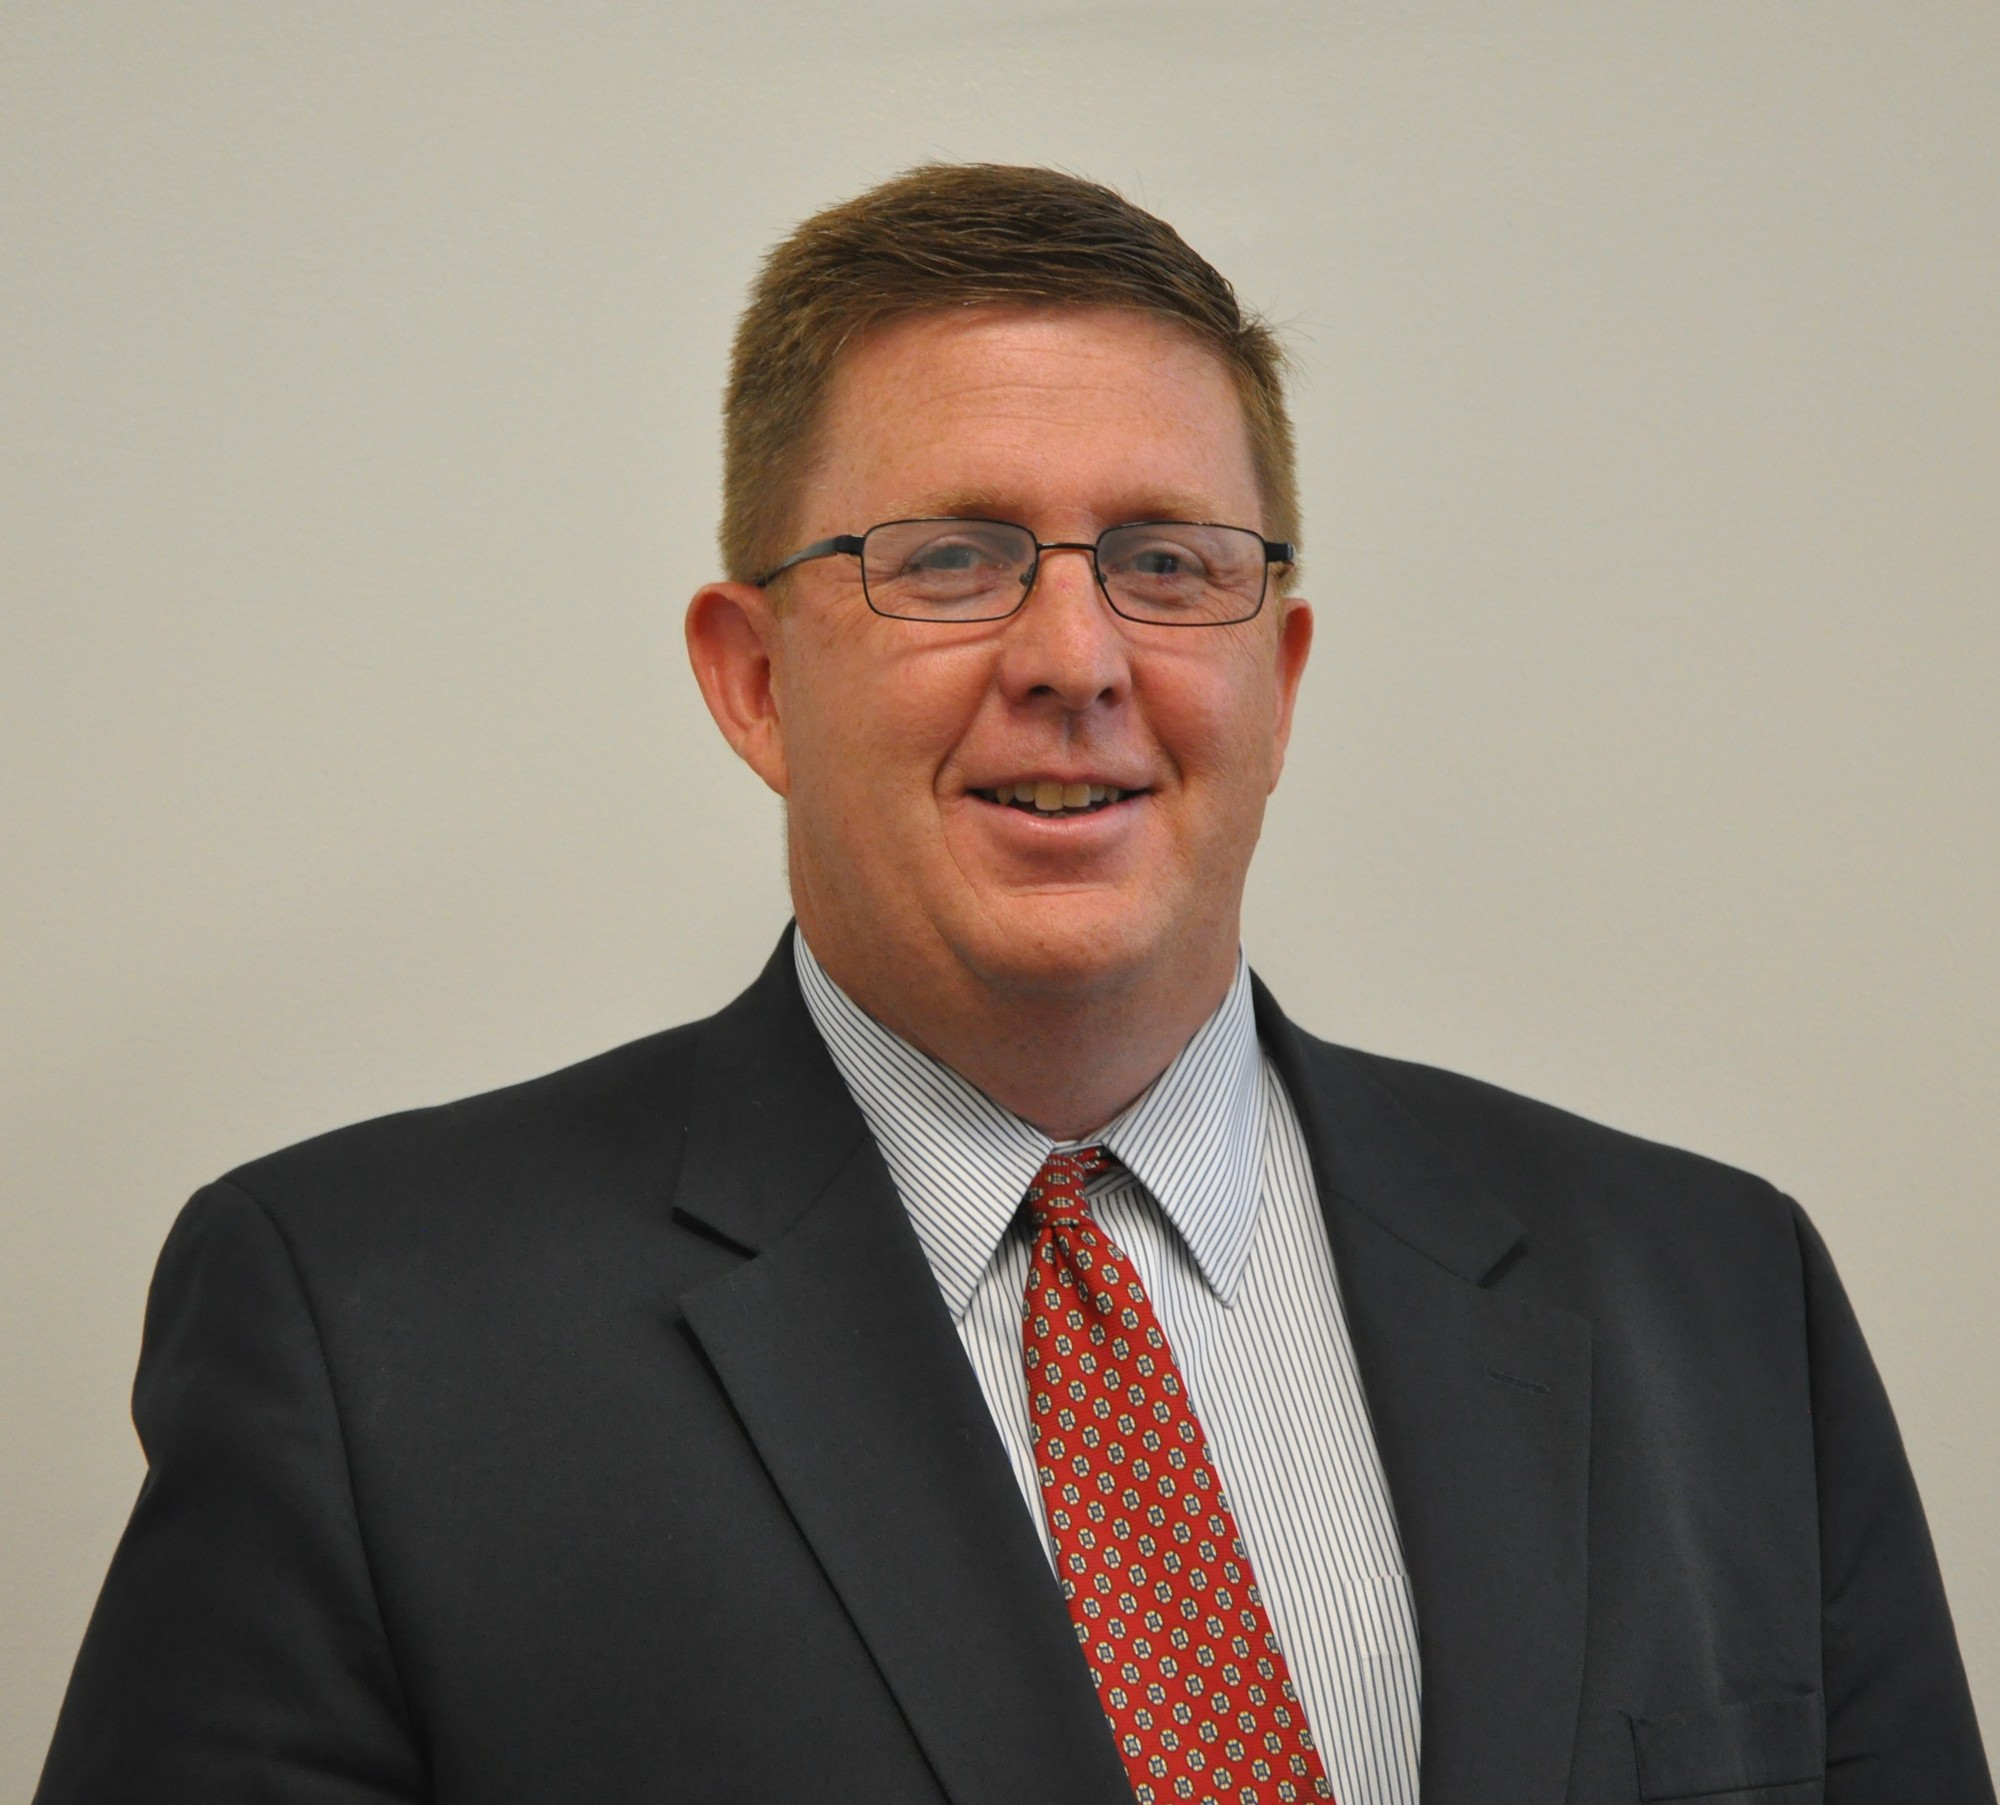 Mark Secaur will join the Hewlett-Woodmere School District as the assistant superintendent for curriculum and instruction.